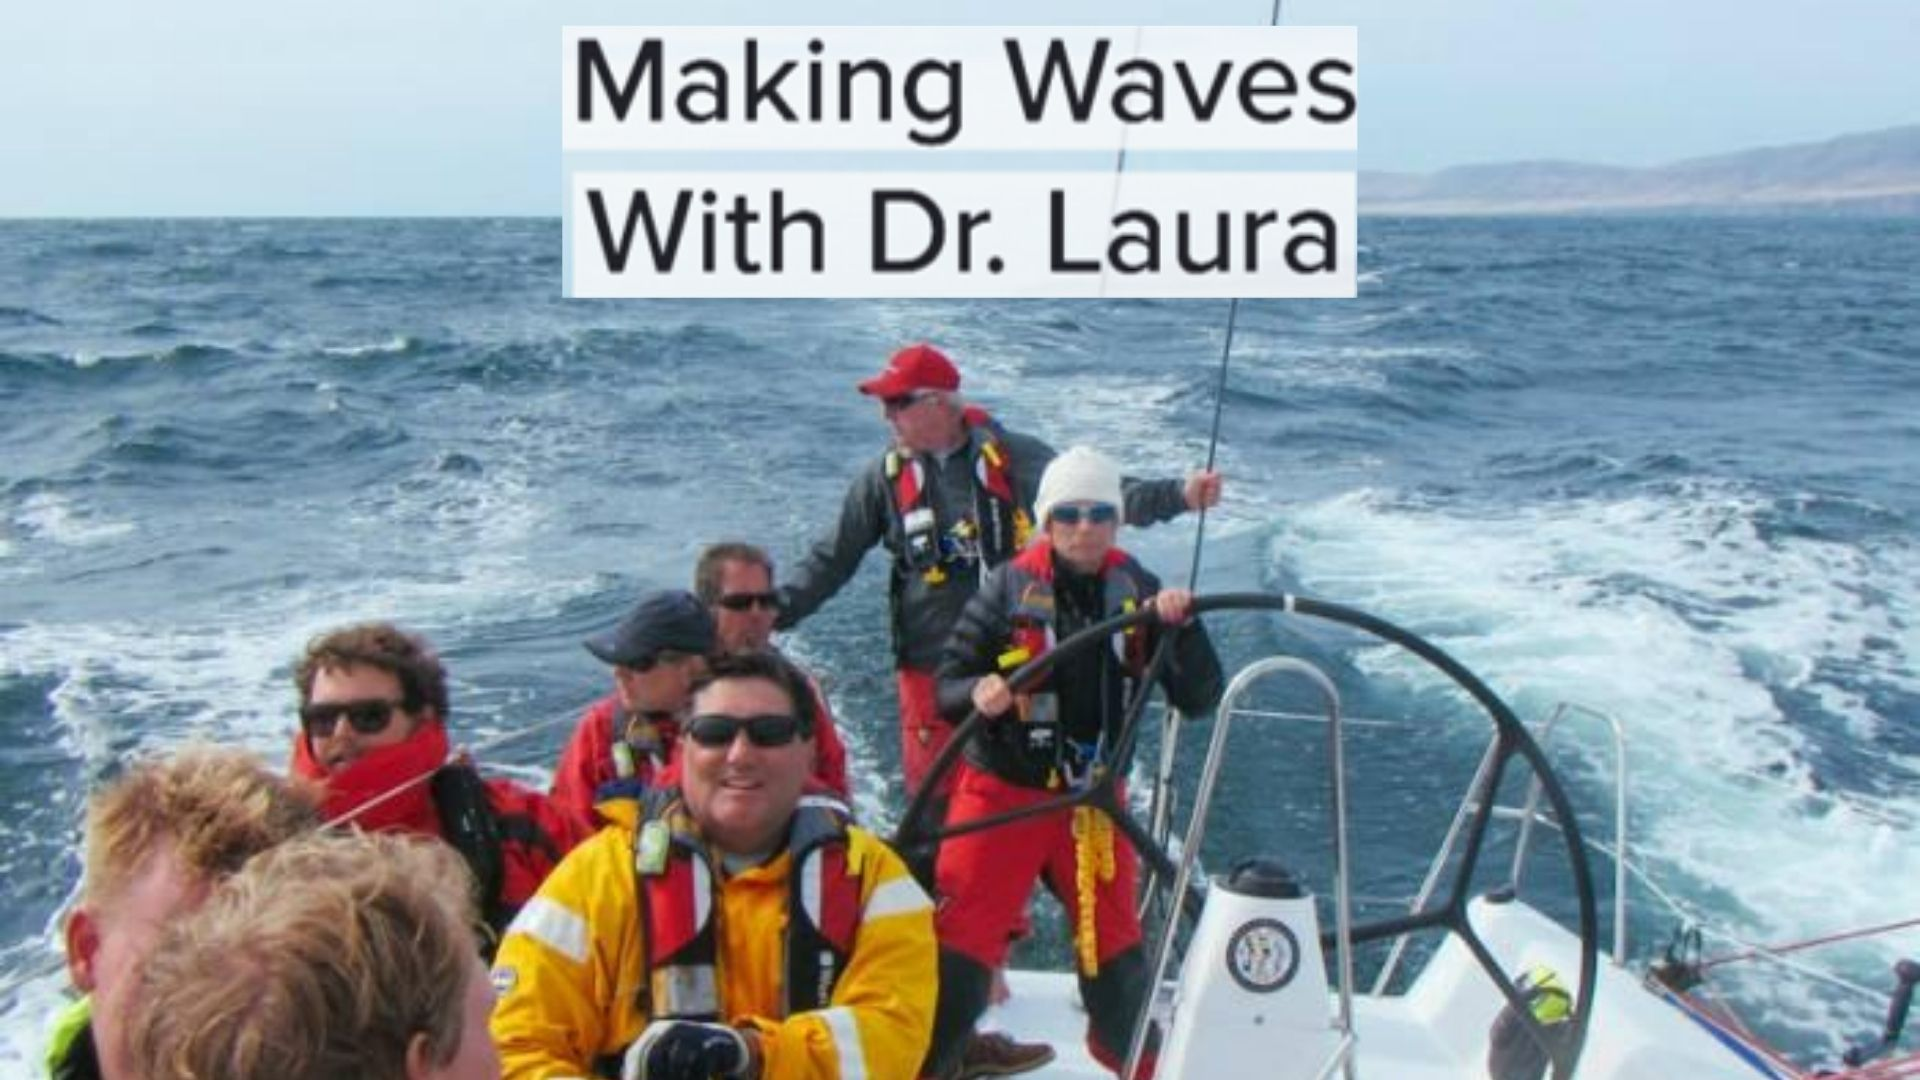 YouTube: Making Waves With Dr. Laura